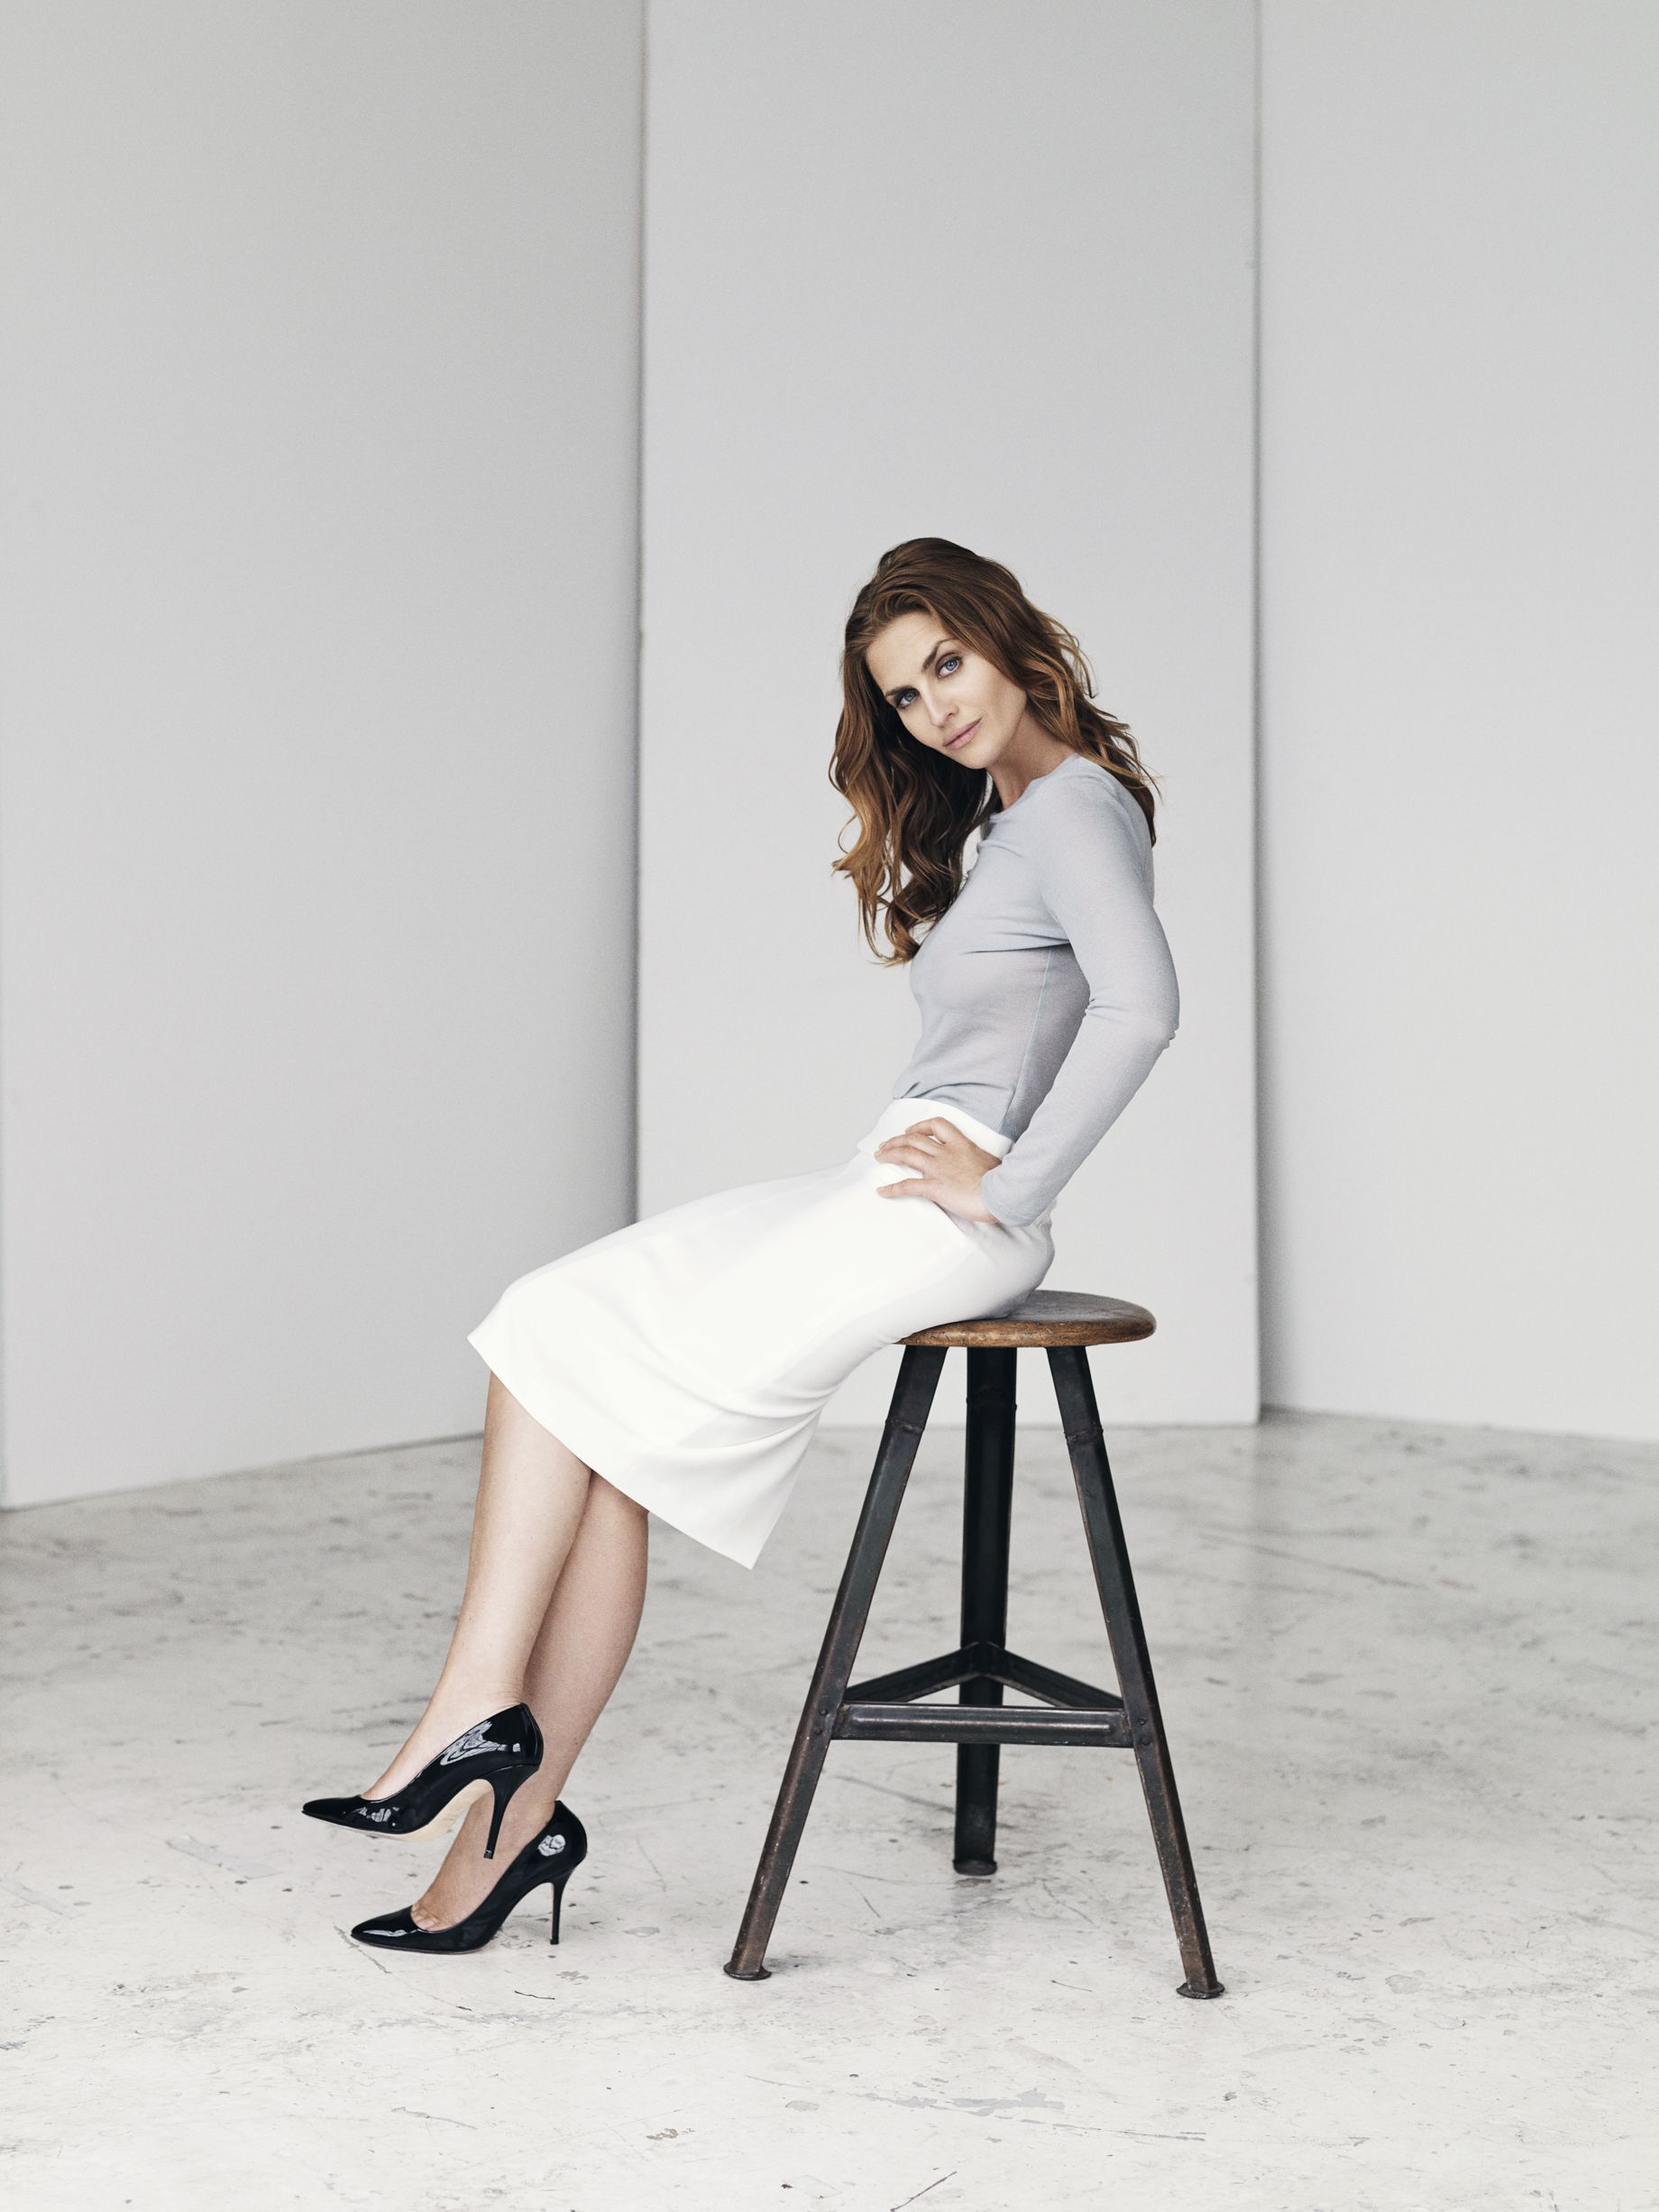 Image pic: White pencil skirt with long sleeved tee - SS15. Model ...